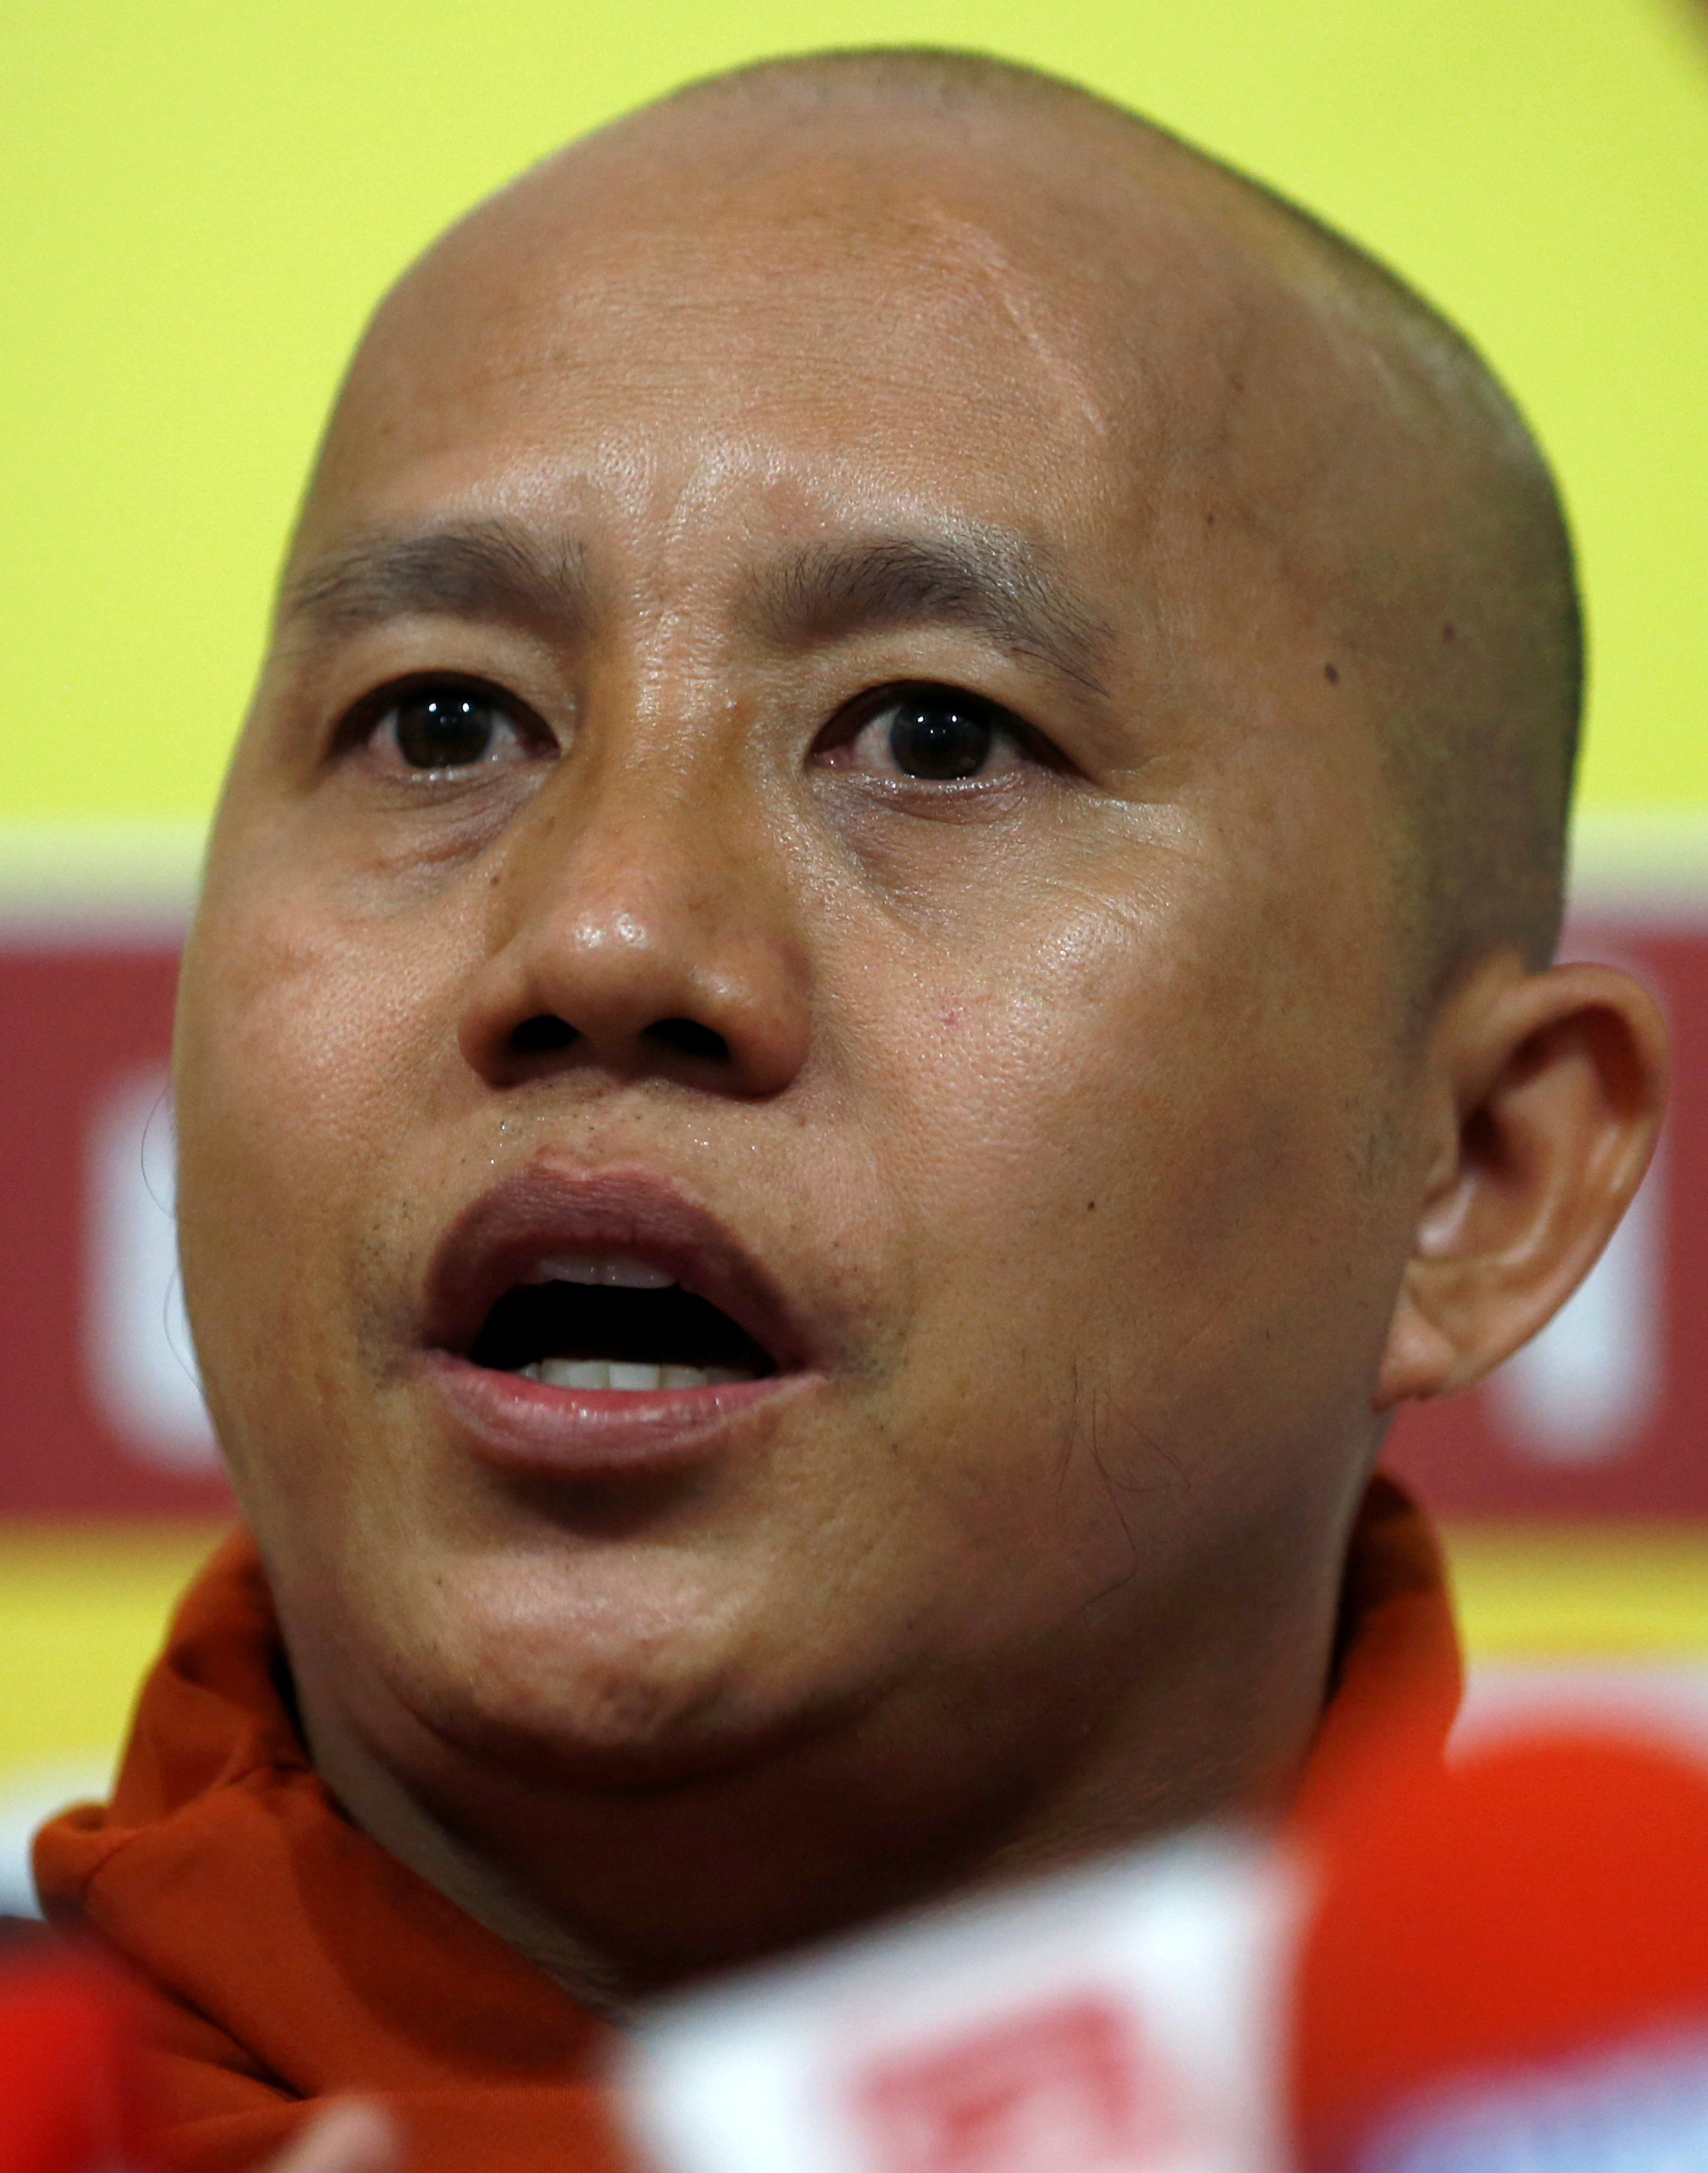 Buddhist monk Ashin Wirathu speaks during a news conference in Colombo September 30, 2014. REUTERS/Dinuka Liyanawatte/File Photo